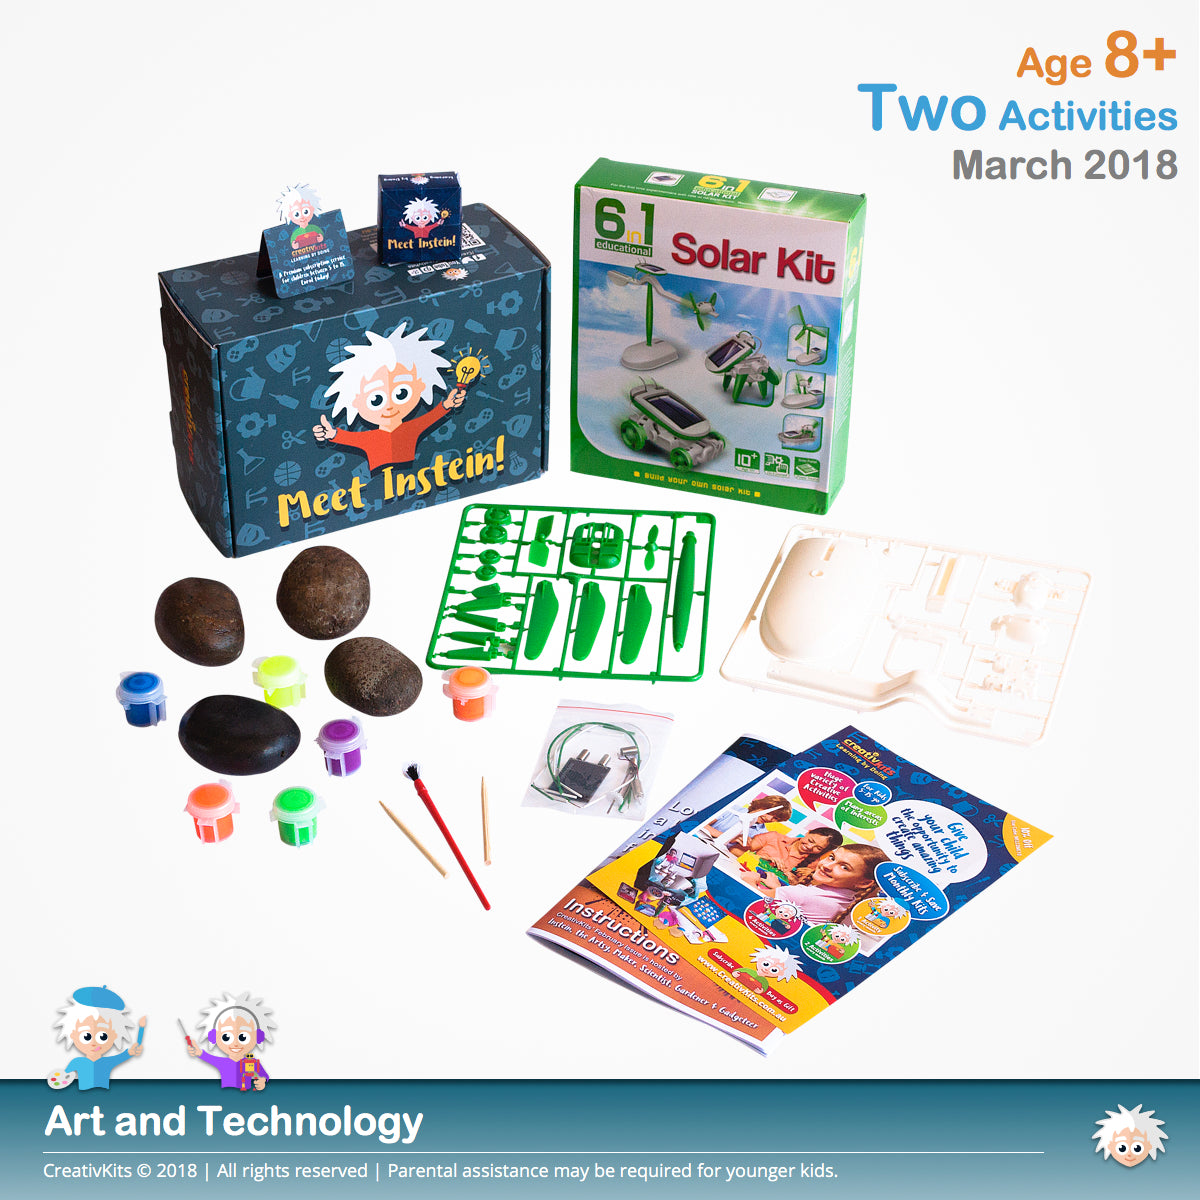 Garden Neon Rocks & Solar-powered Gadgets | March Standard Art and Science Combo Kit | Age 8+